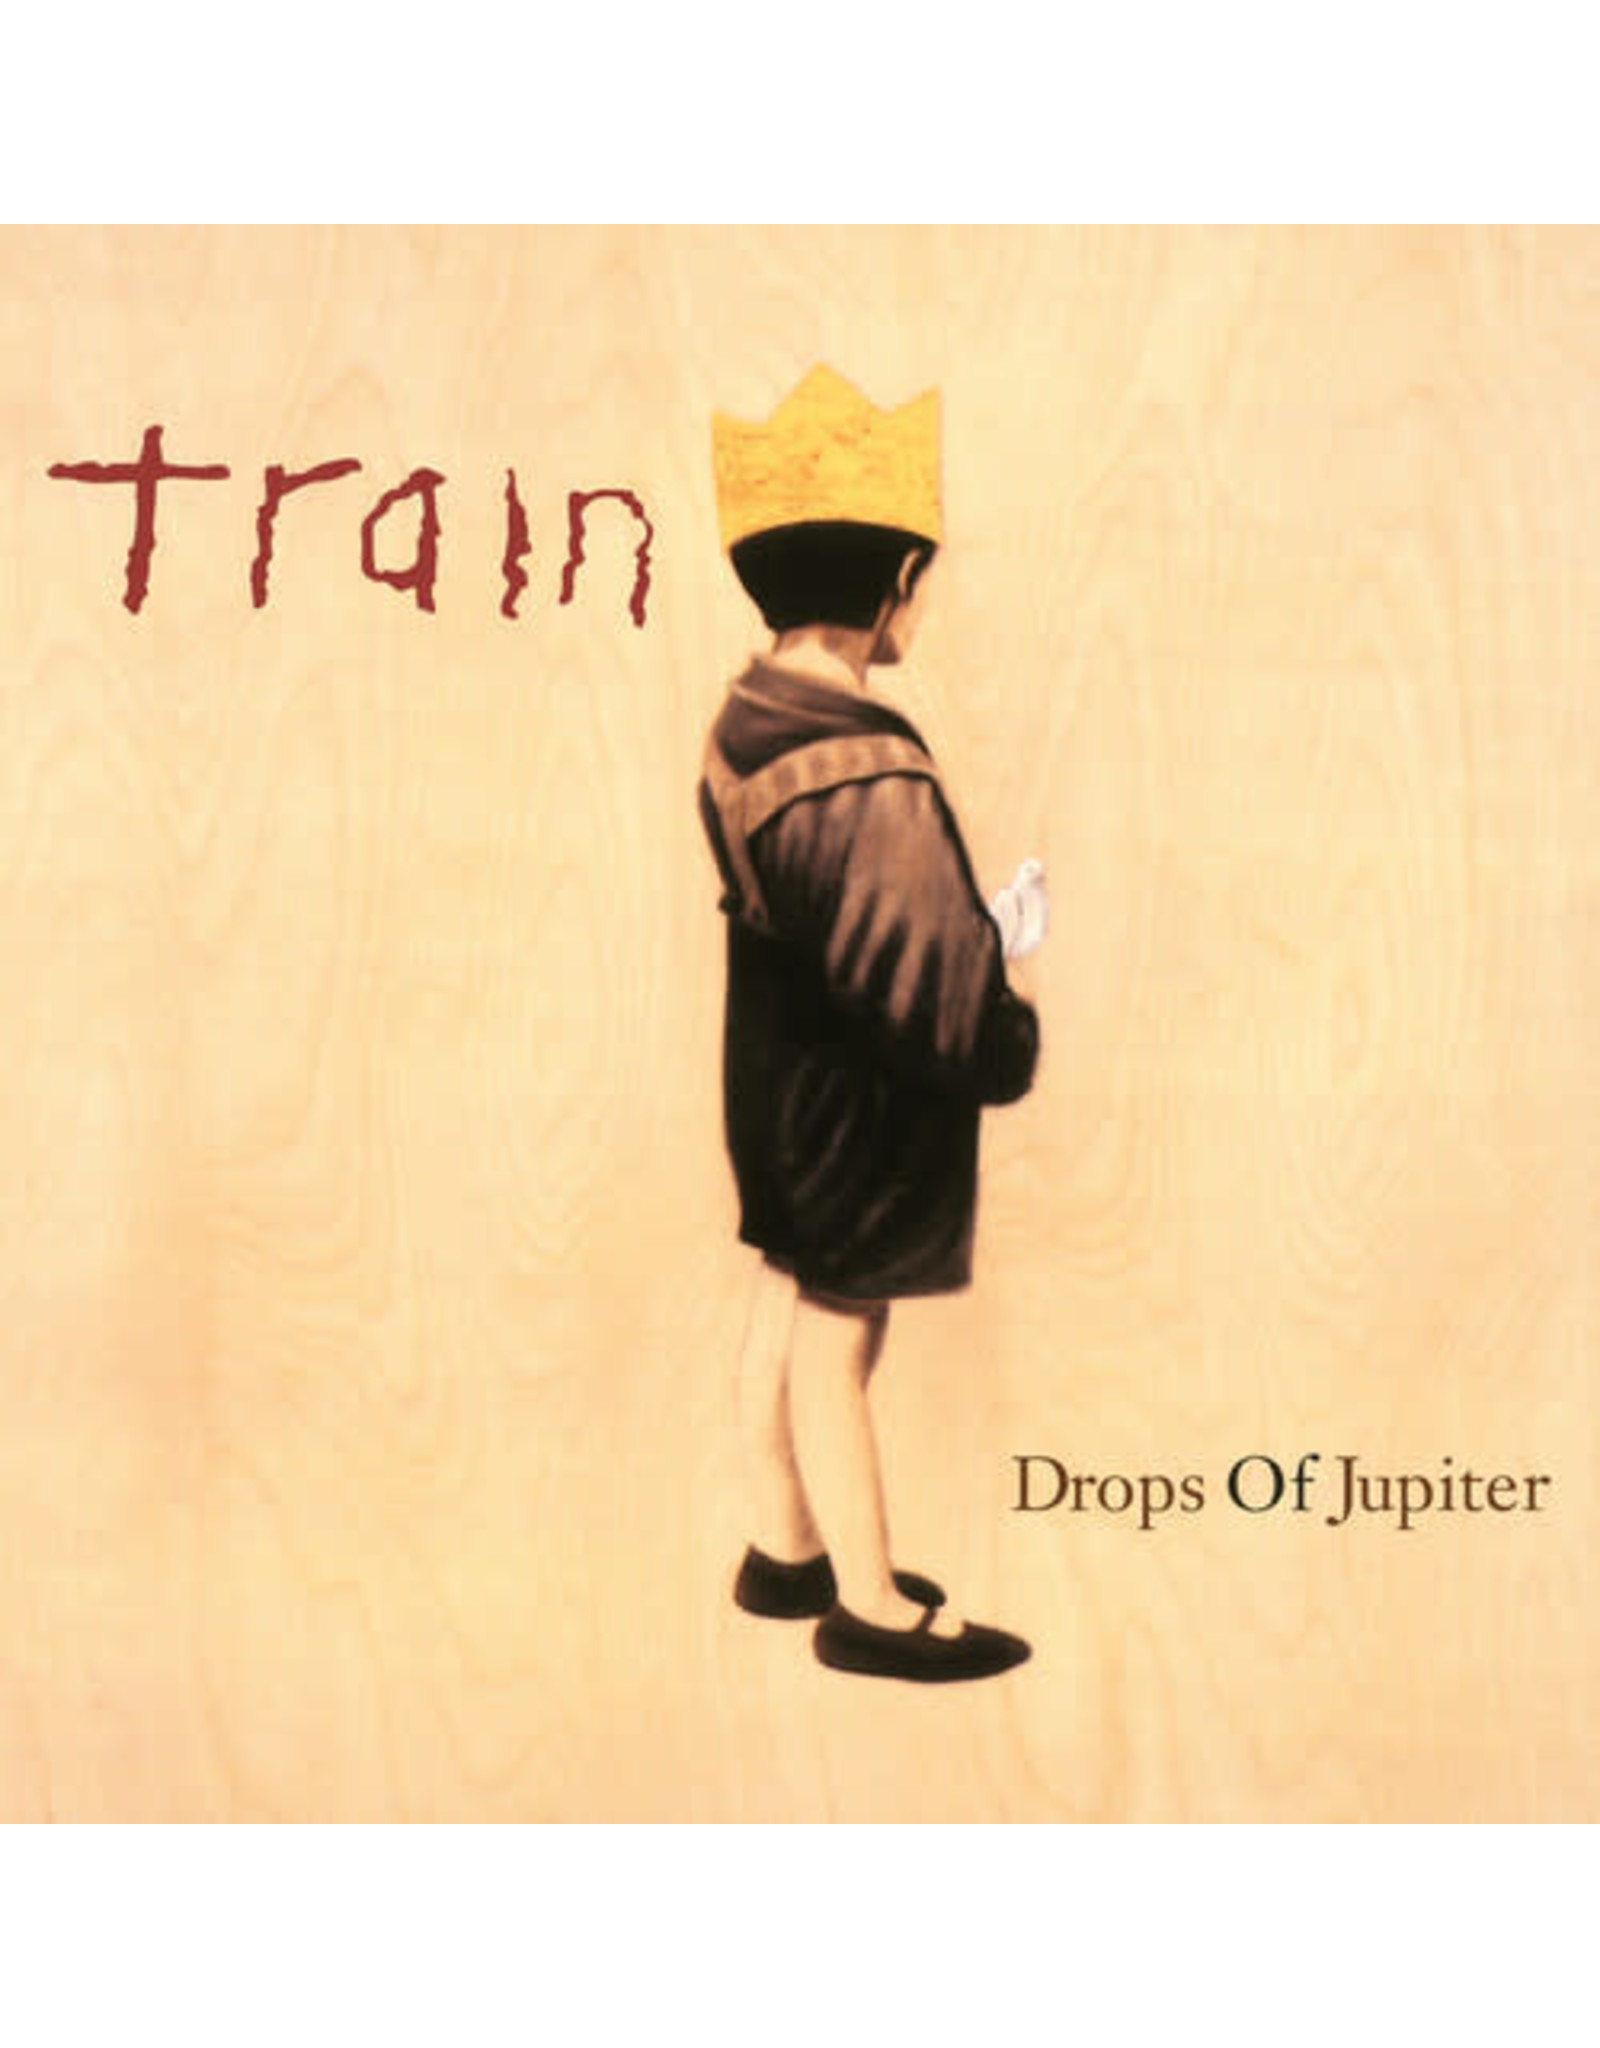 New Vinyl Train - Drops Of Jupiter (20th Anniversary, Colored) LP